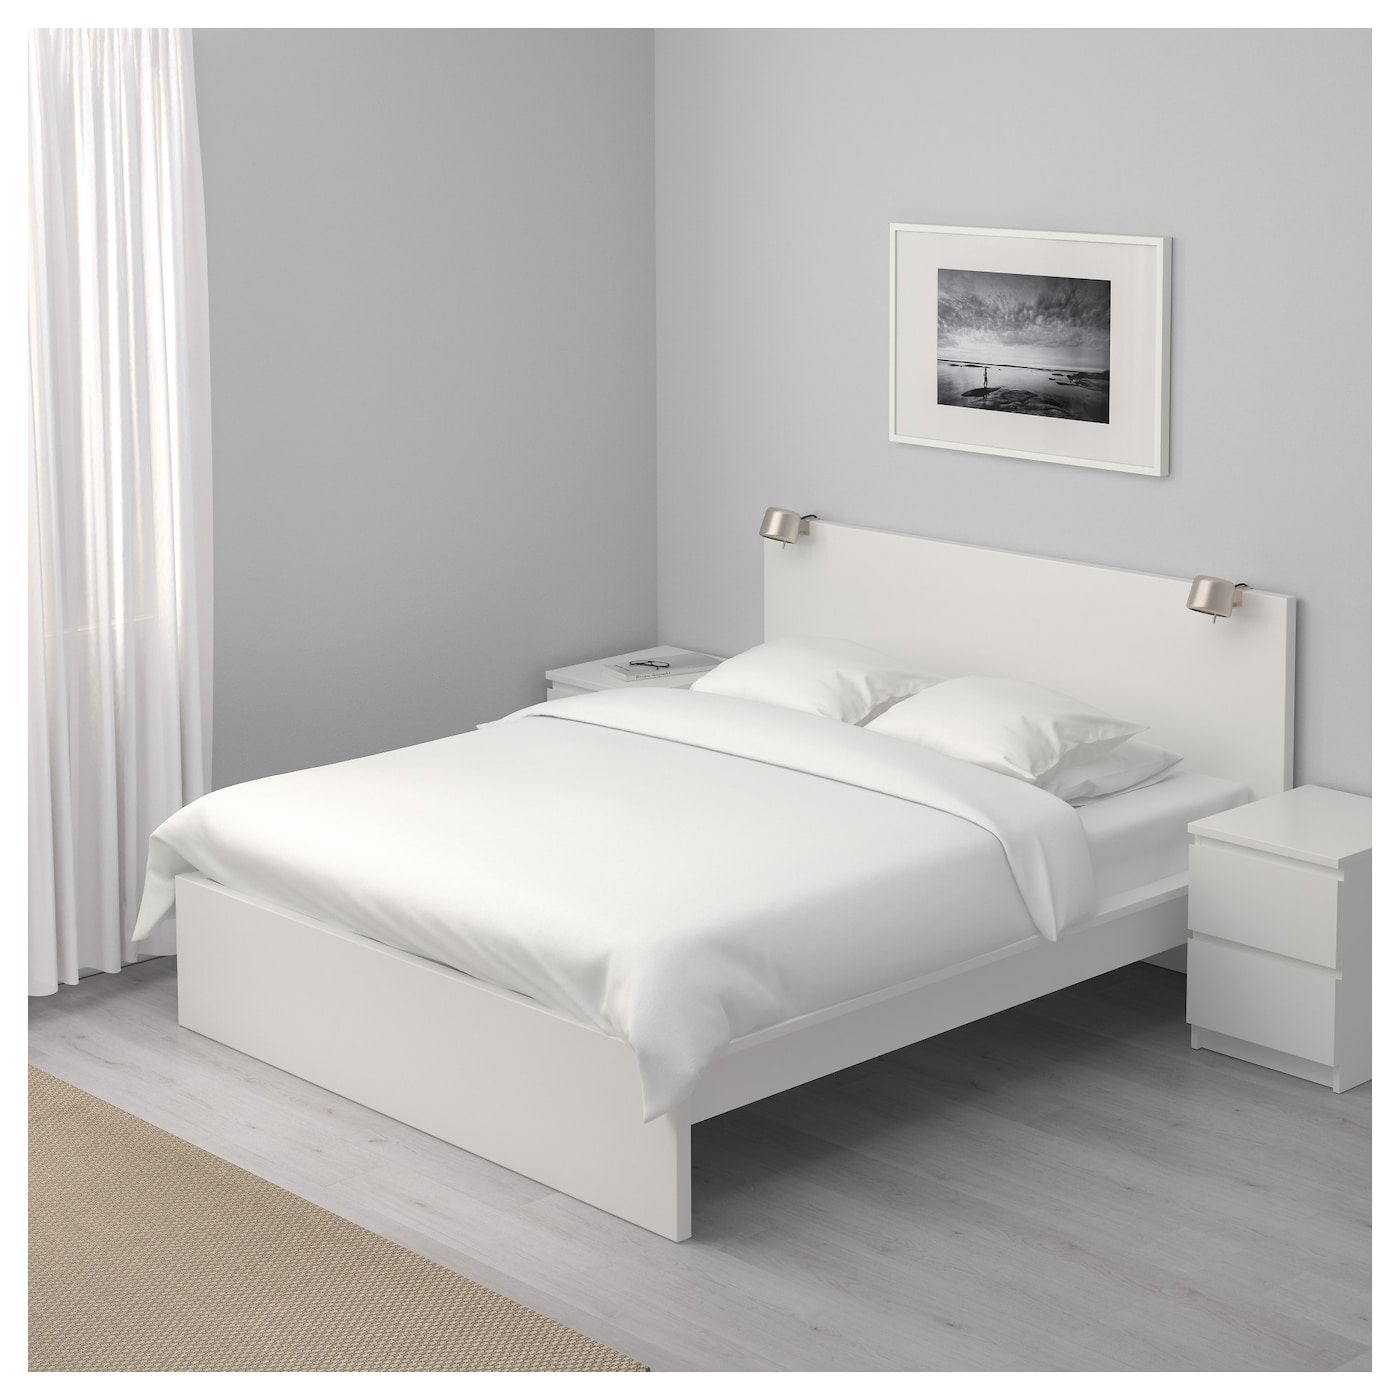 Malm Bed Frame High White Luroy Queen Ikea White Bed Frame